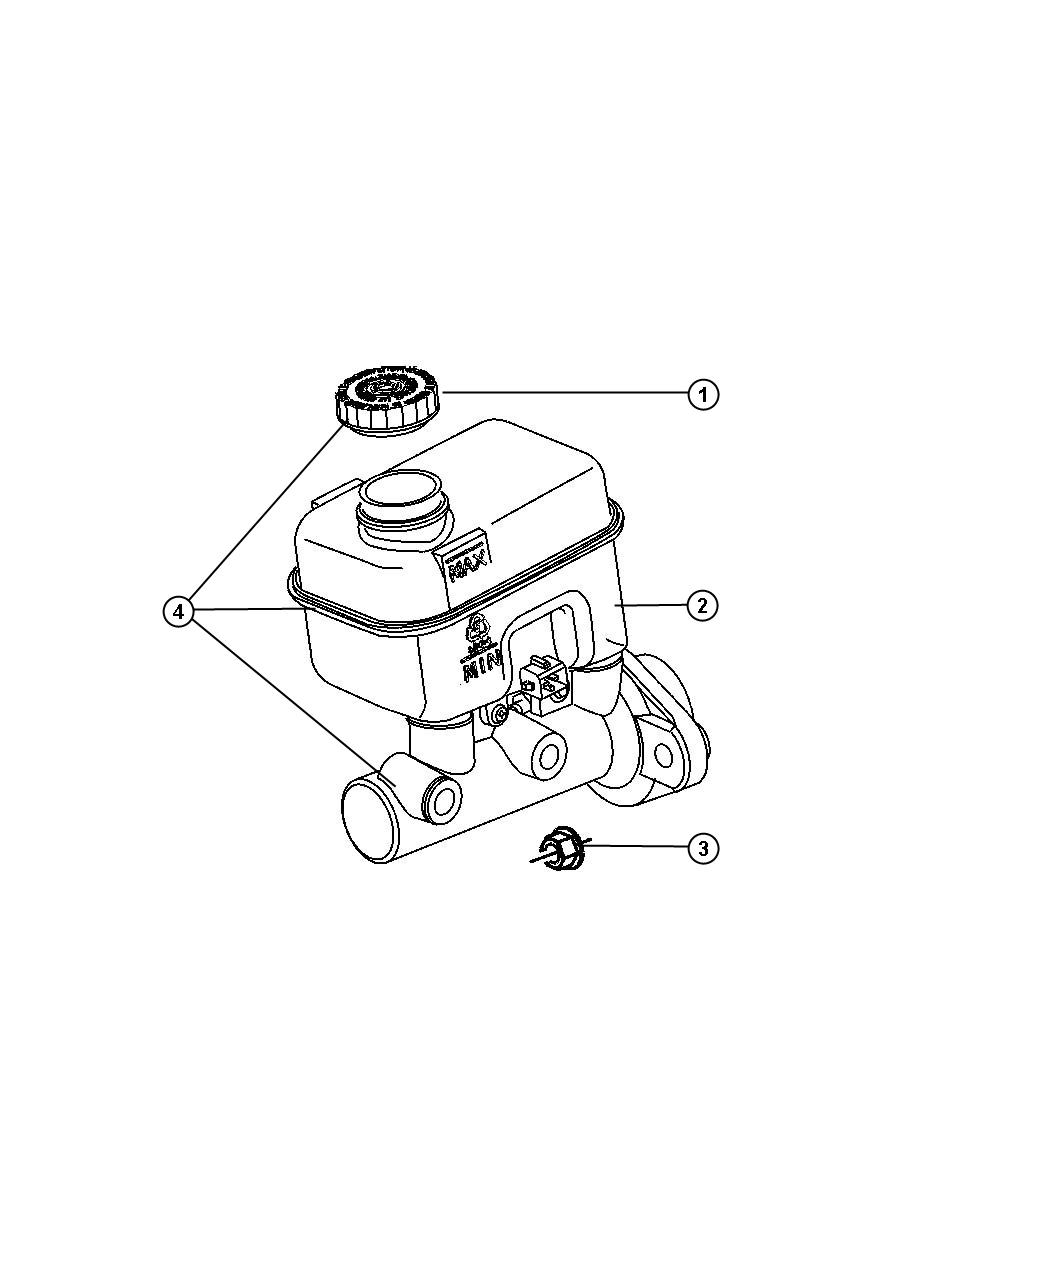 2013 Chrysler 200 Used for: NUT AND WASHER KIT. Mounting